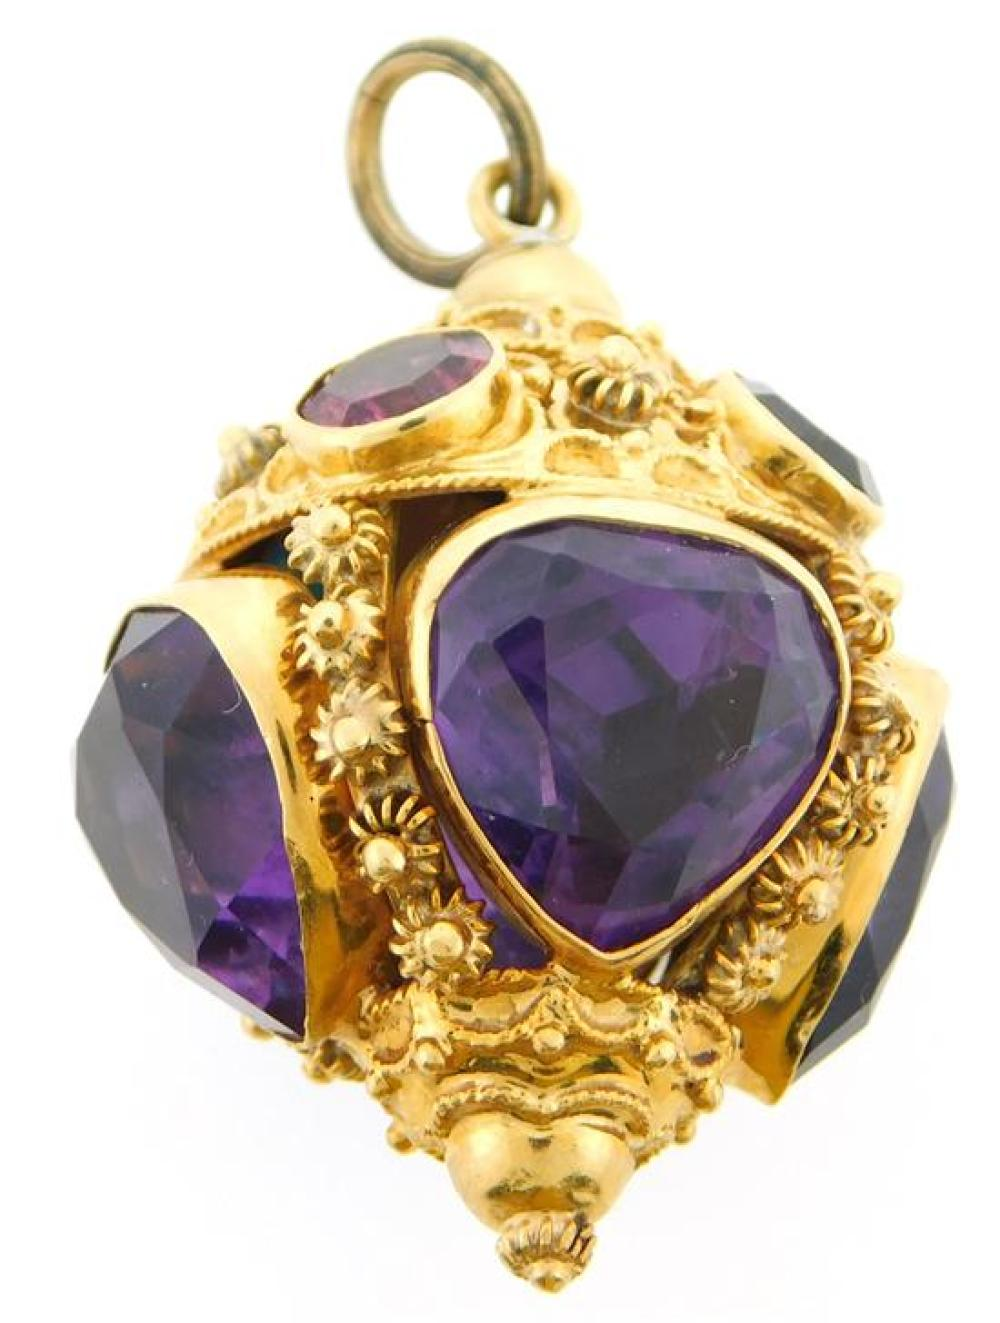 JEWELRY: 18K Amethyst Fob/Pendant, tested 18K yellow gold orb shaped fob pendant, 1 9/16 inches tall, 1 1/8 inches in diameter at it...